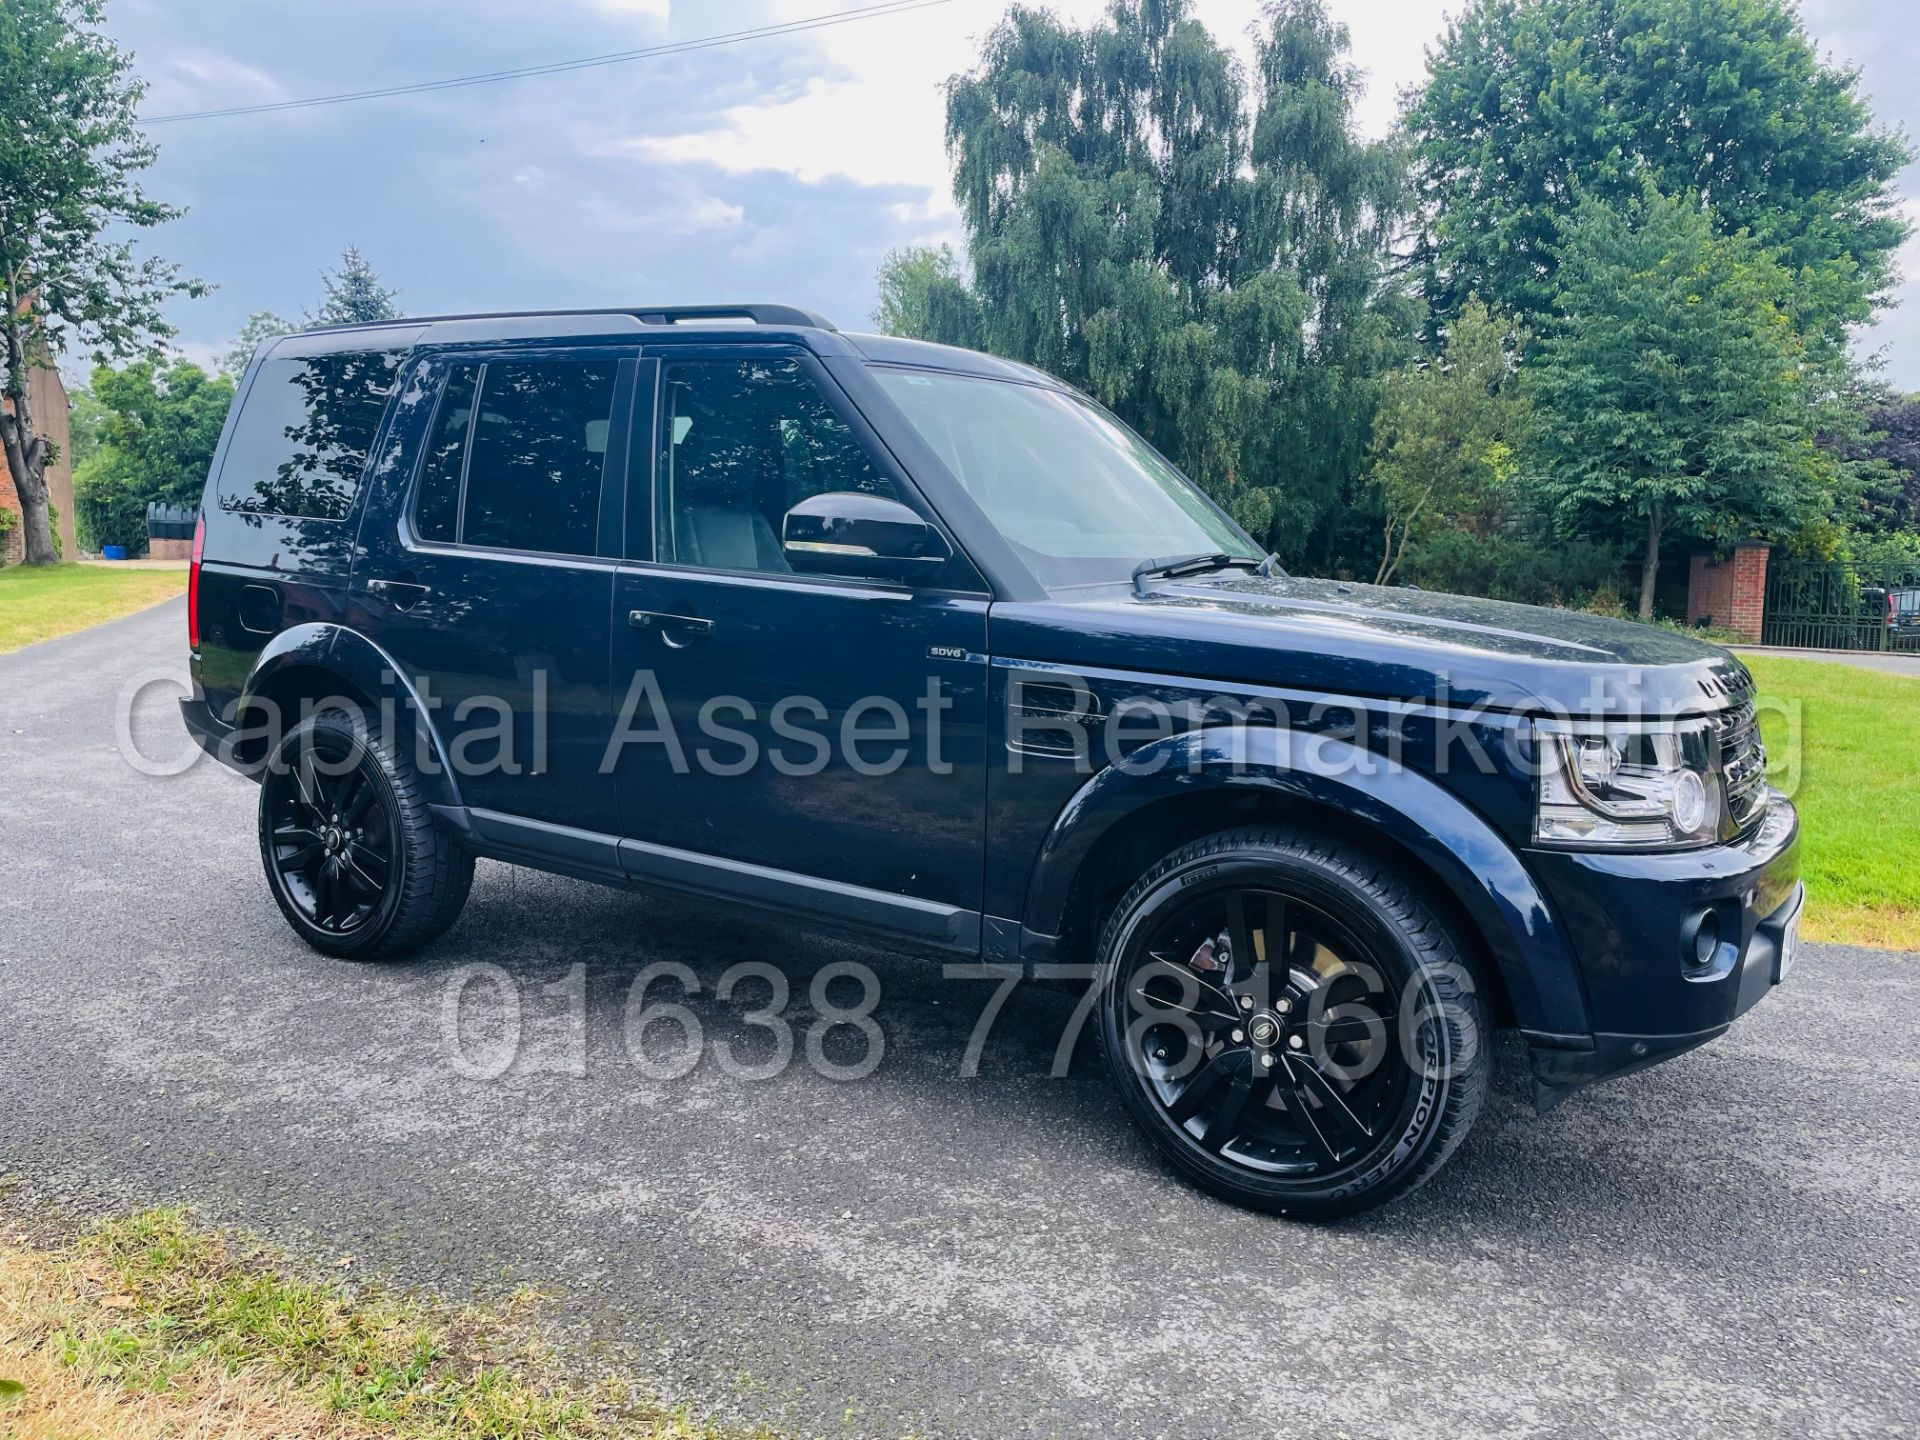 LAND ROVER DISCOVERY 4 *HSE* 7 SEATER SUV (2014 - NEW MODEL) '3.0 SDV6 - 255 BHP - 8 SPEED AUTO' - Image 11 of 61